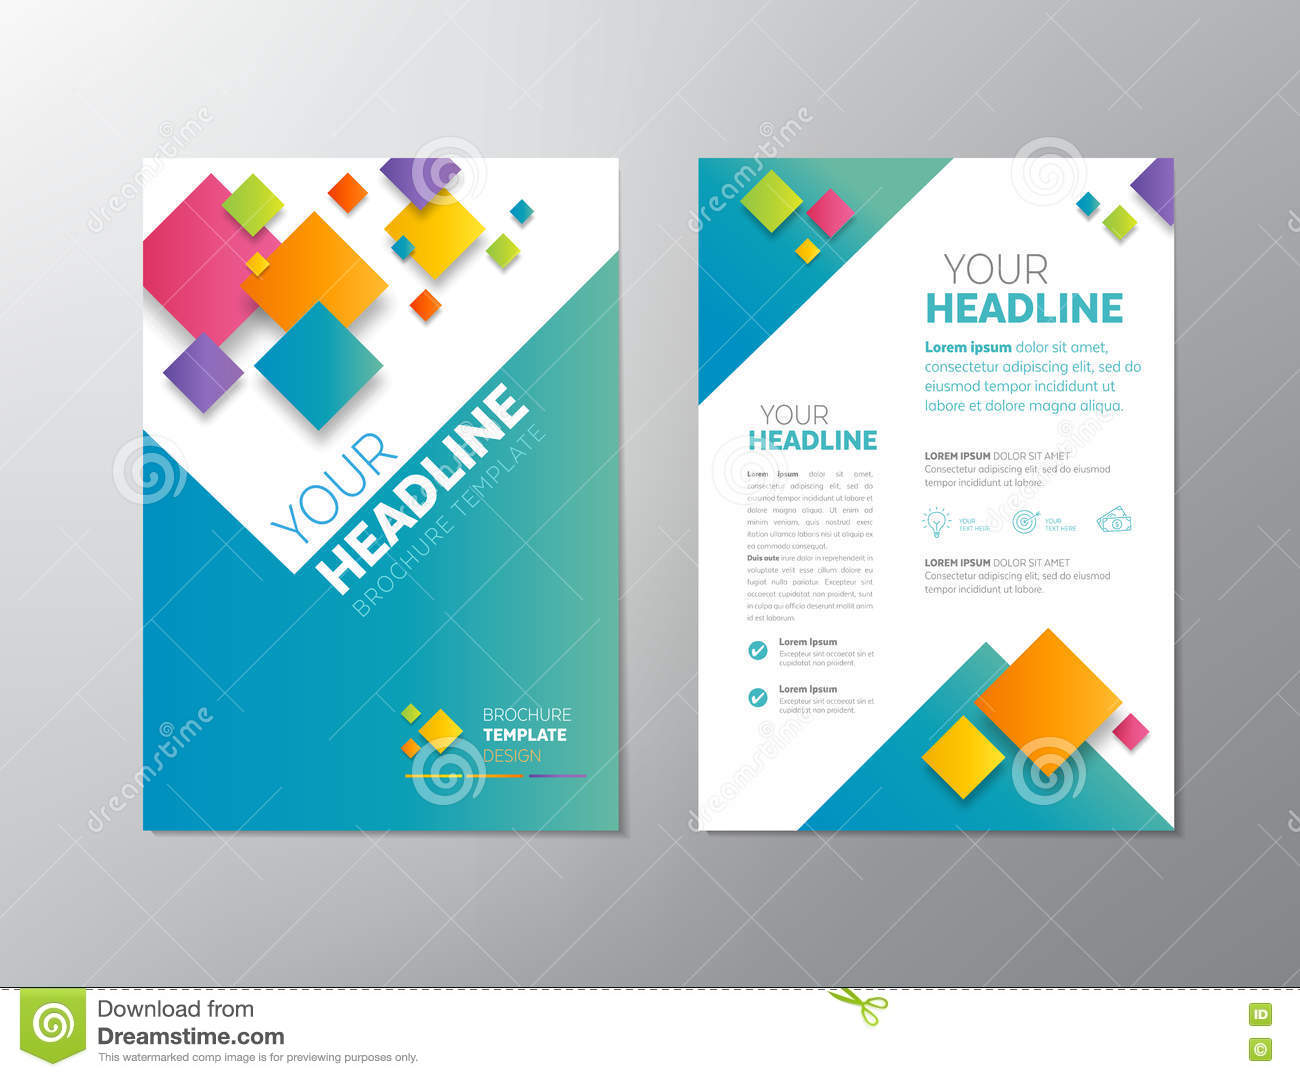 Brochure - Leaflet Design stock vector. Image of colorful